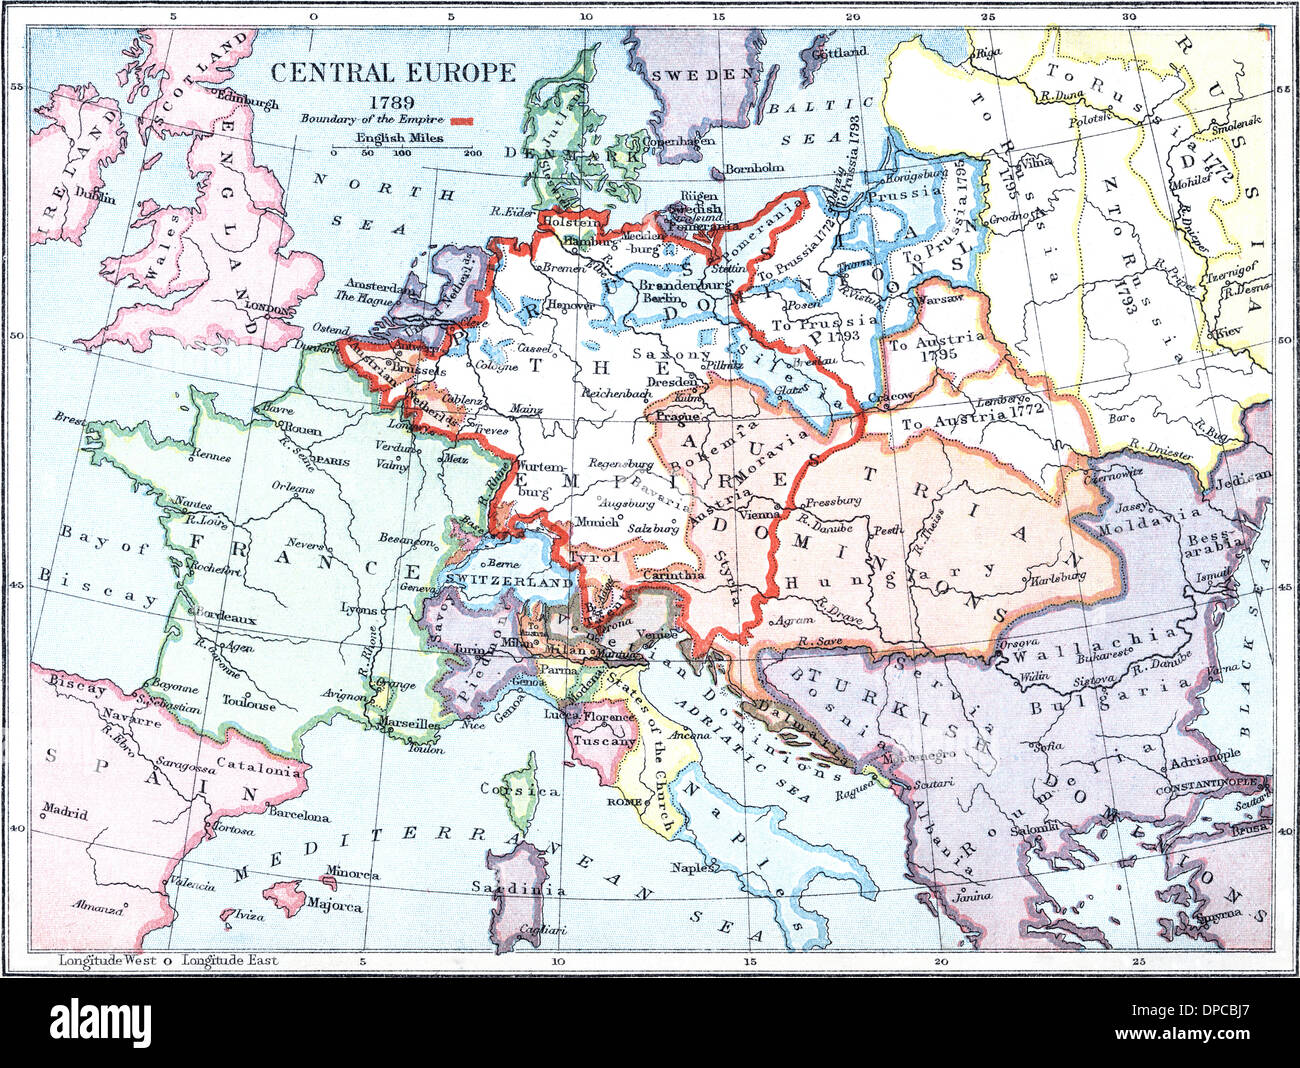 Map of Central Europe 1789 Stock Photo: 65426095 - Alamy